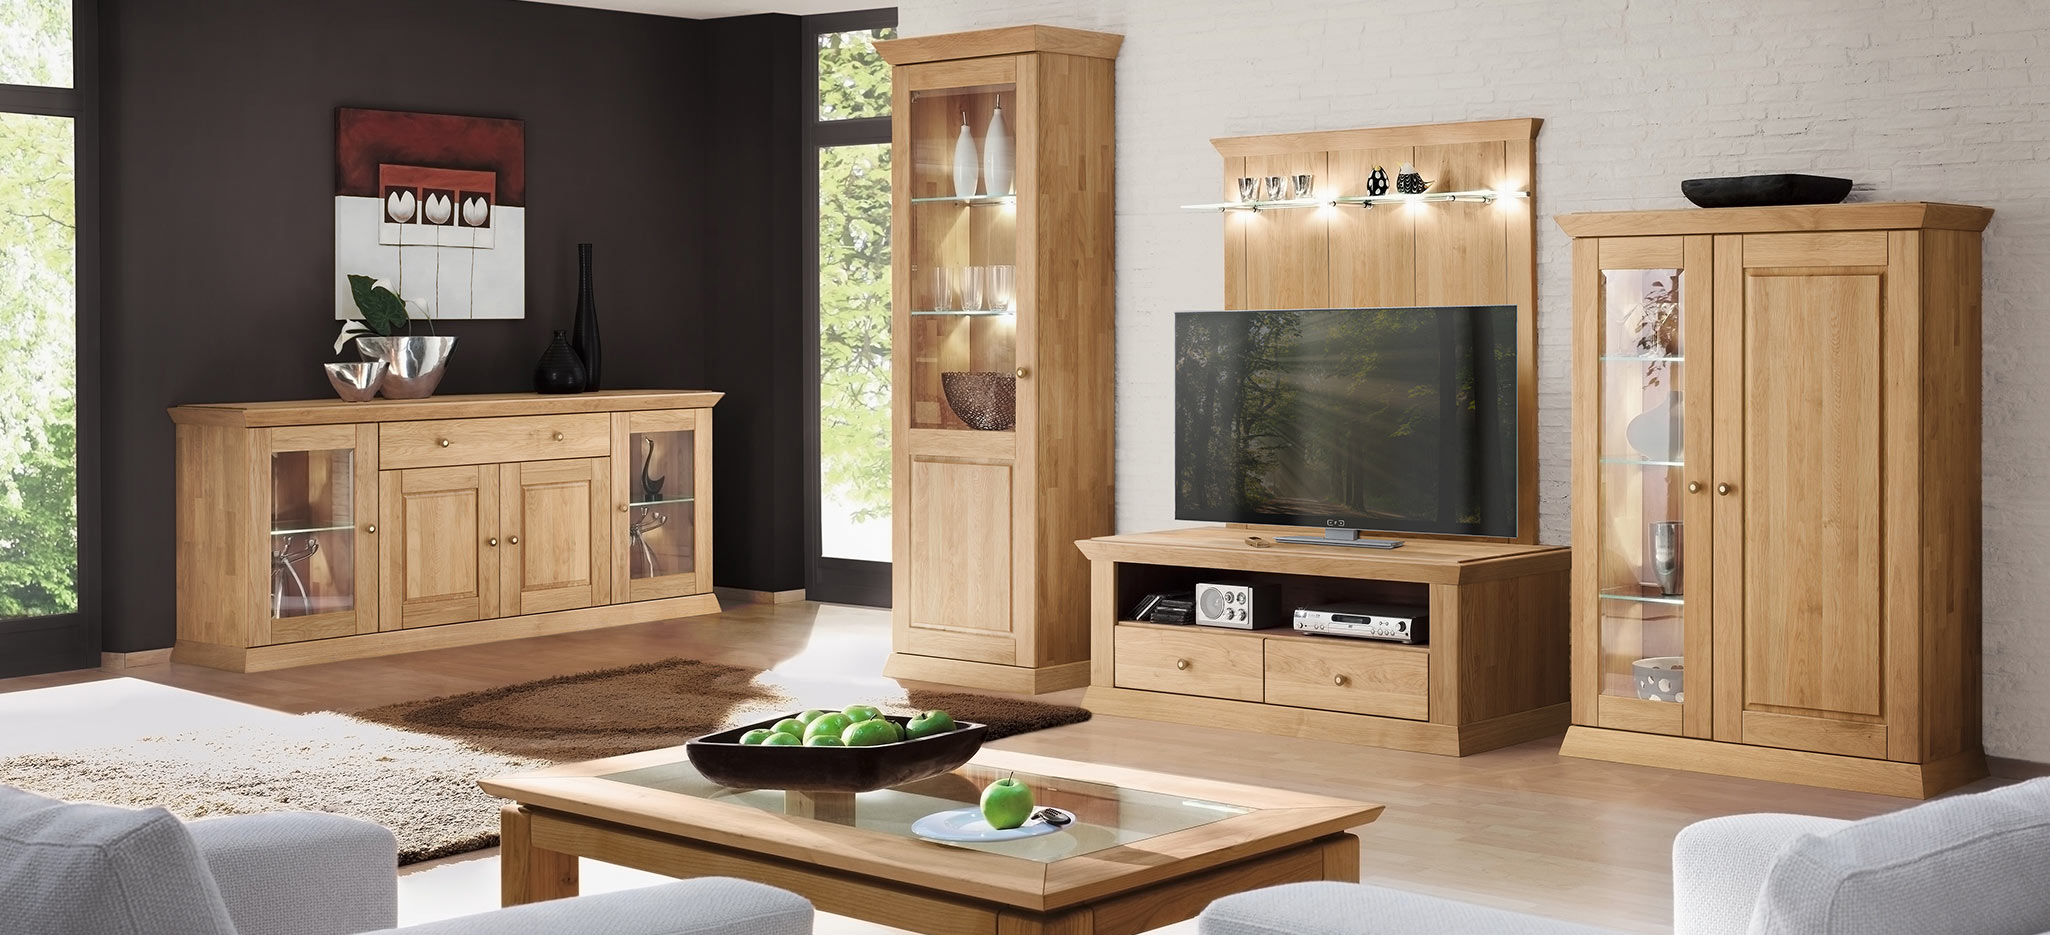 prato massivholzm bel kollektion decker. Black Bedroom Furniture Sets. Home Design Ideas